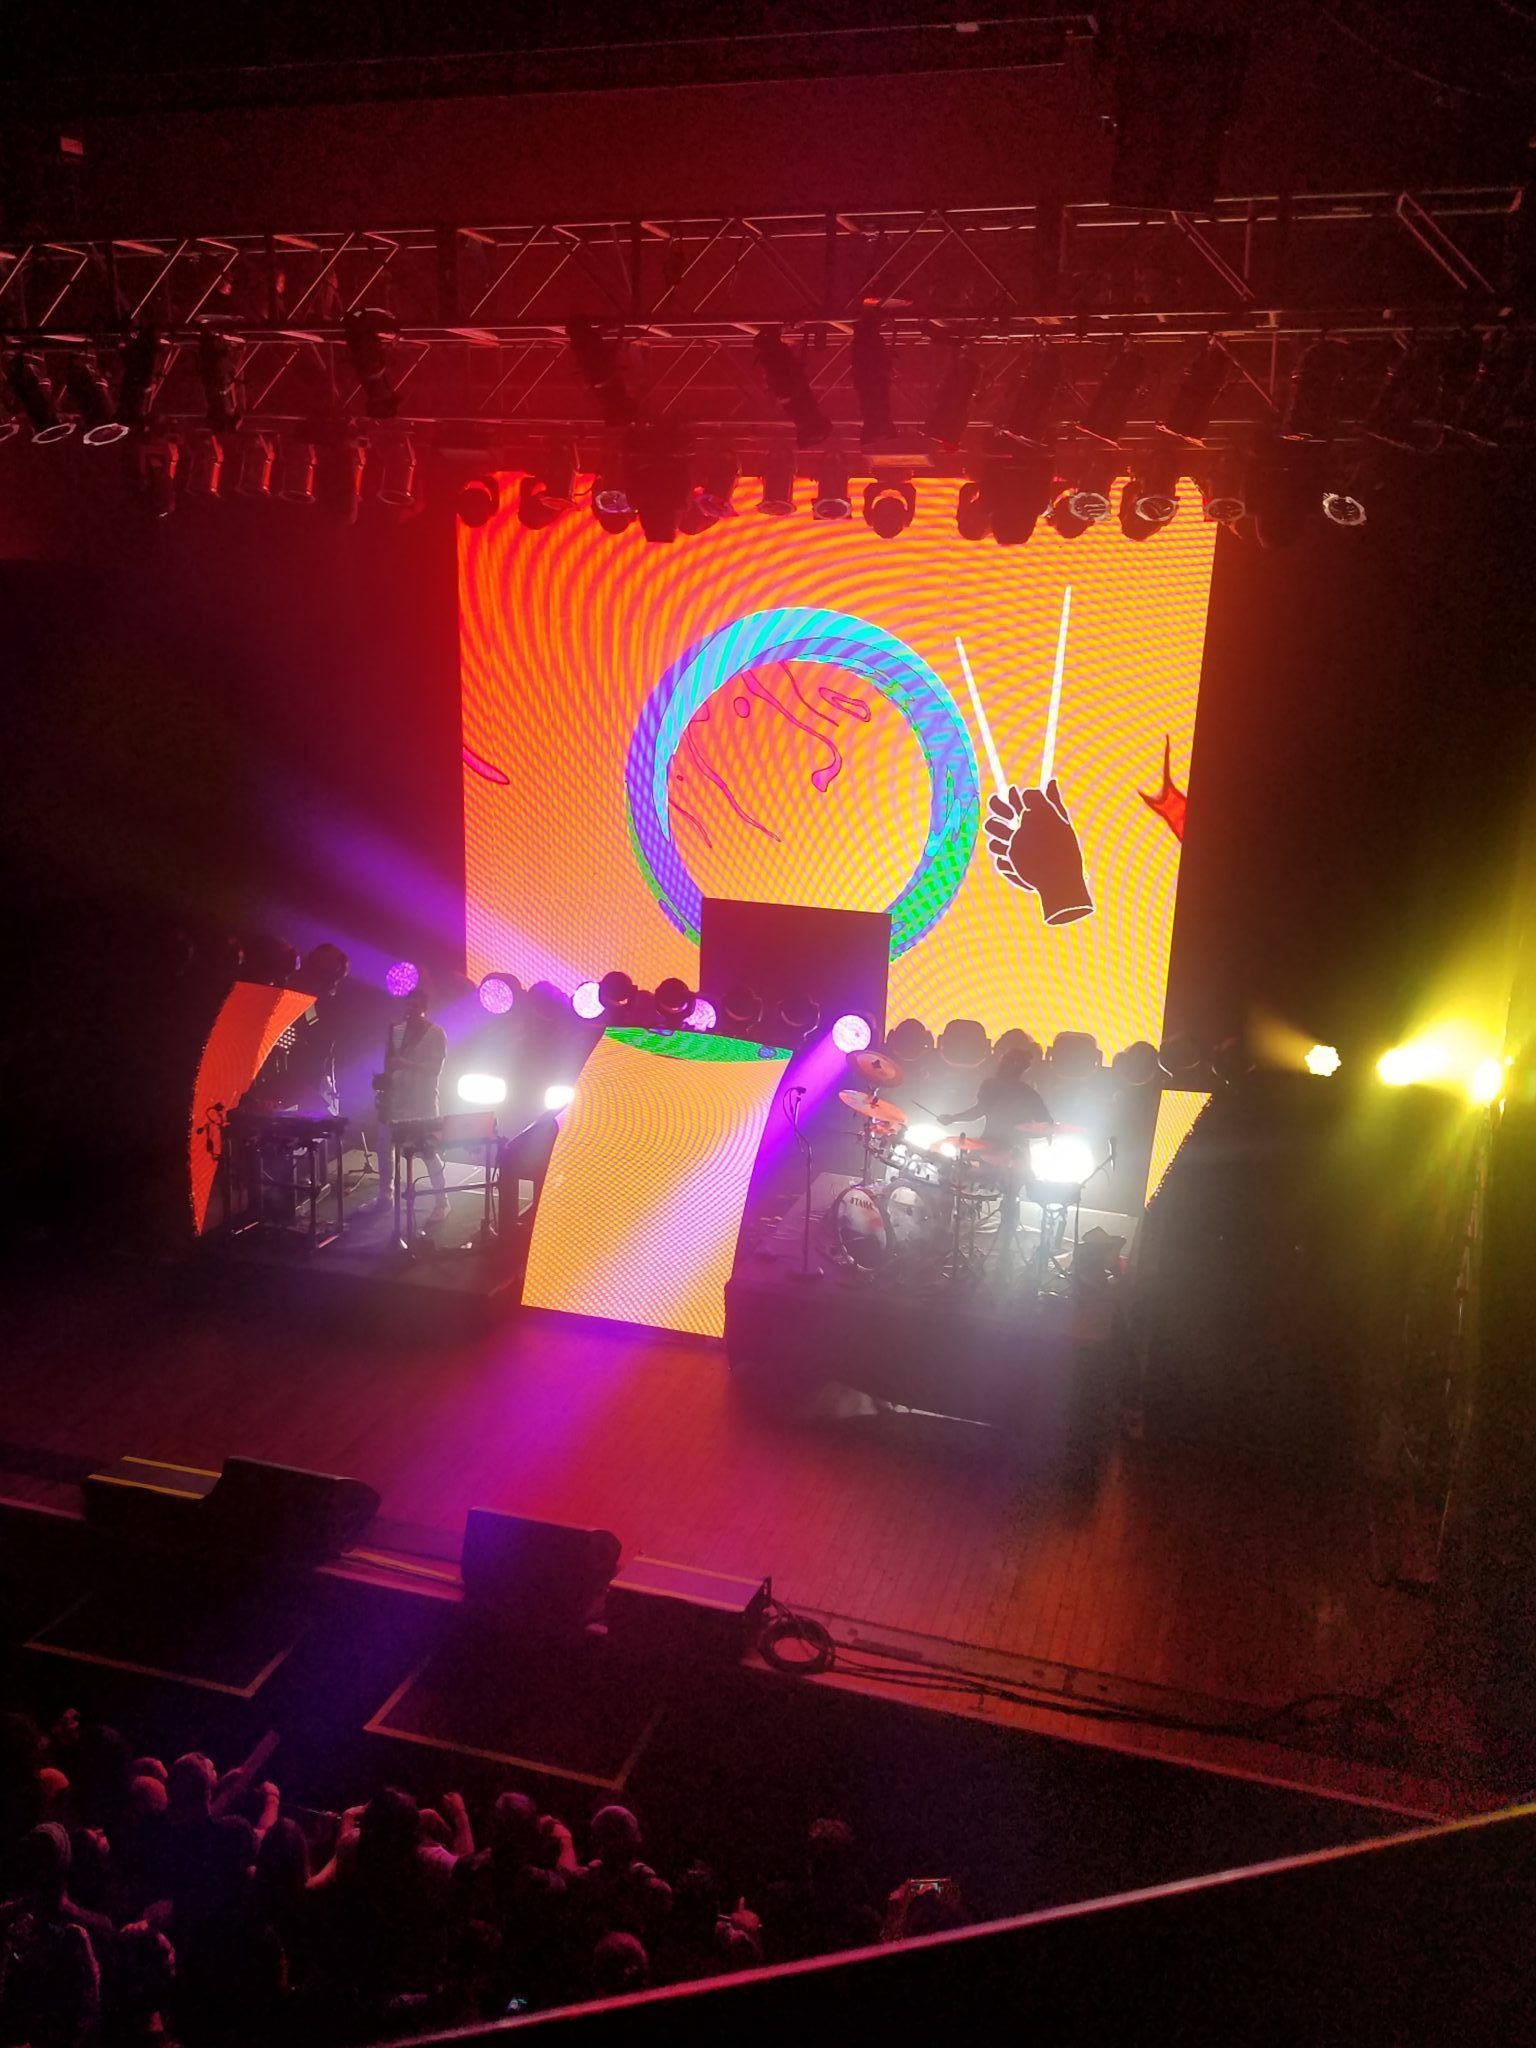 Concert Review: Big Gigantic at the House of Blues